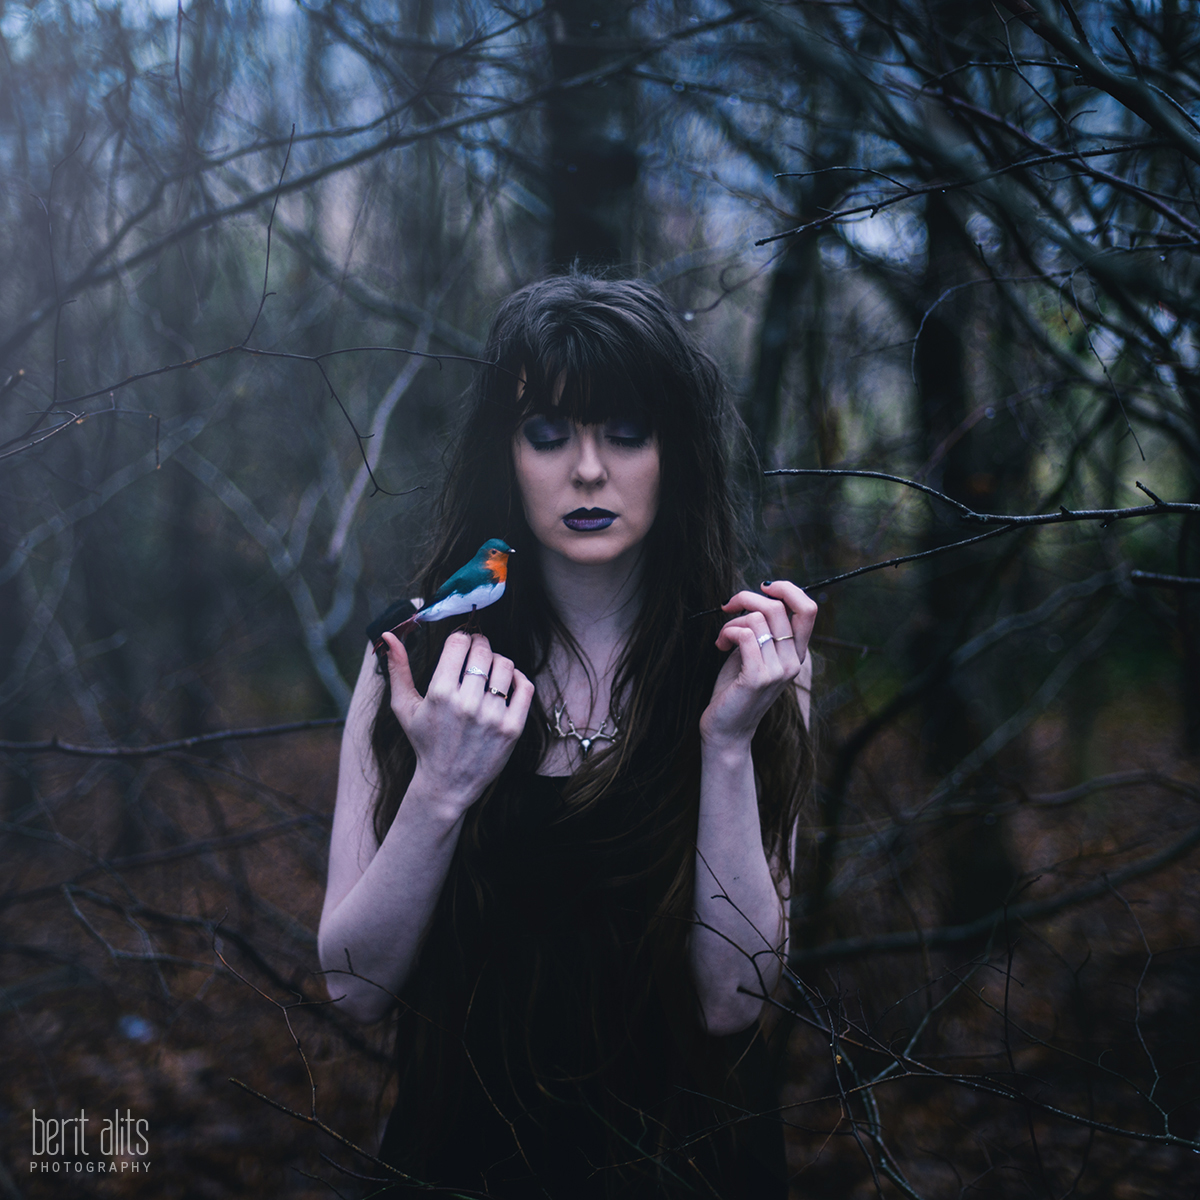 01_creative_portrait_photoshoot_artistic_romantic_ethereal_dreamy_fine_art_conceptual_book_cover_trees_bare_branches_forest_winter_bird_girl_cold_long_hair_black_dress_makeup_whisperer_nature_dark_nikon_d800_50_mm_light_clonmel_tipperary_ireland